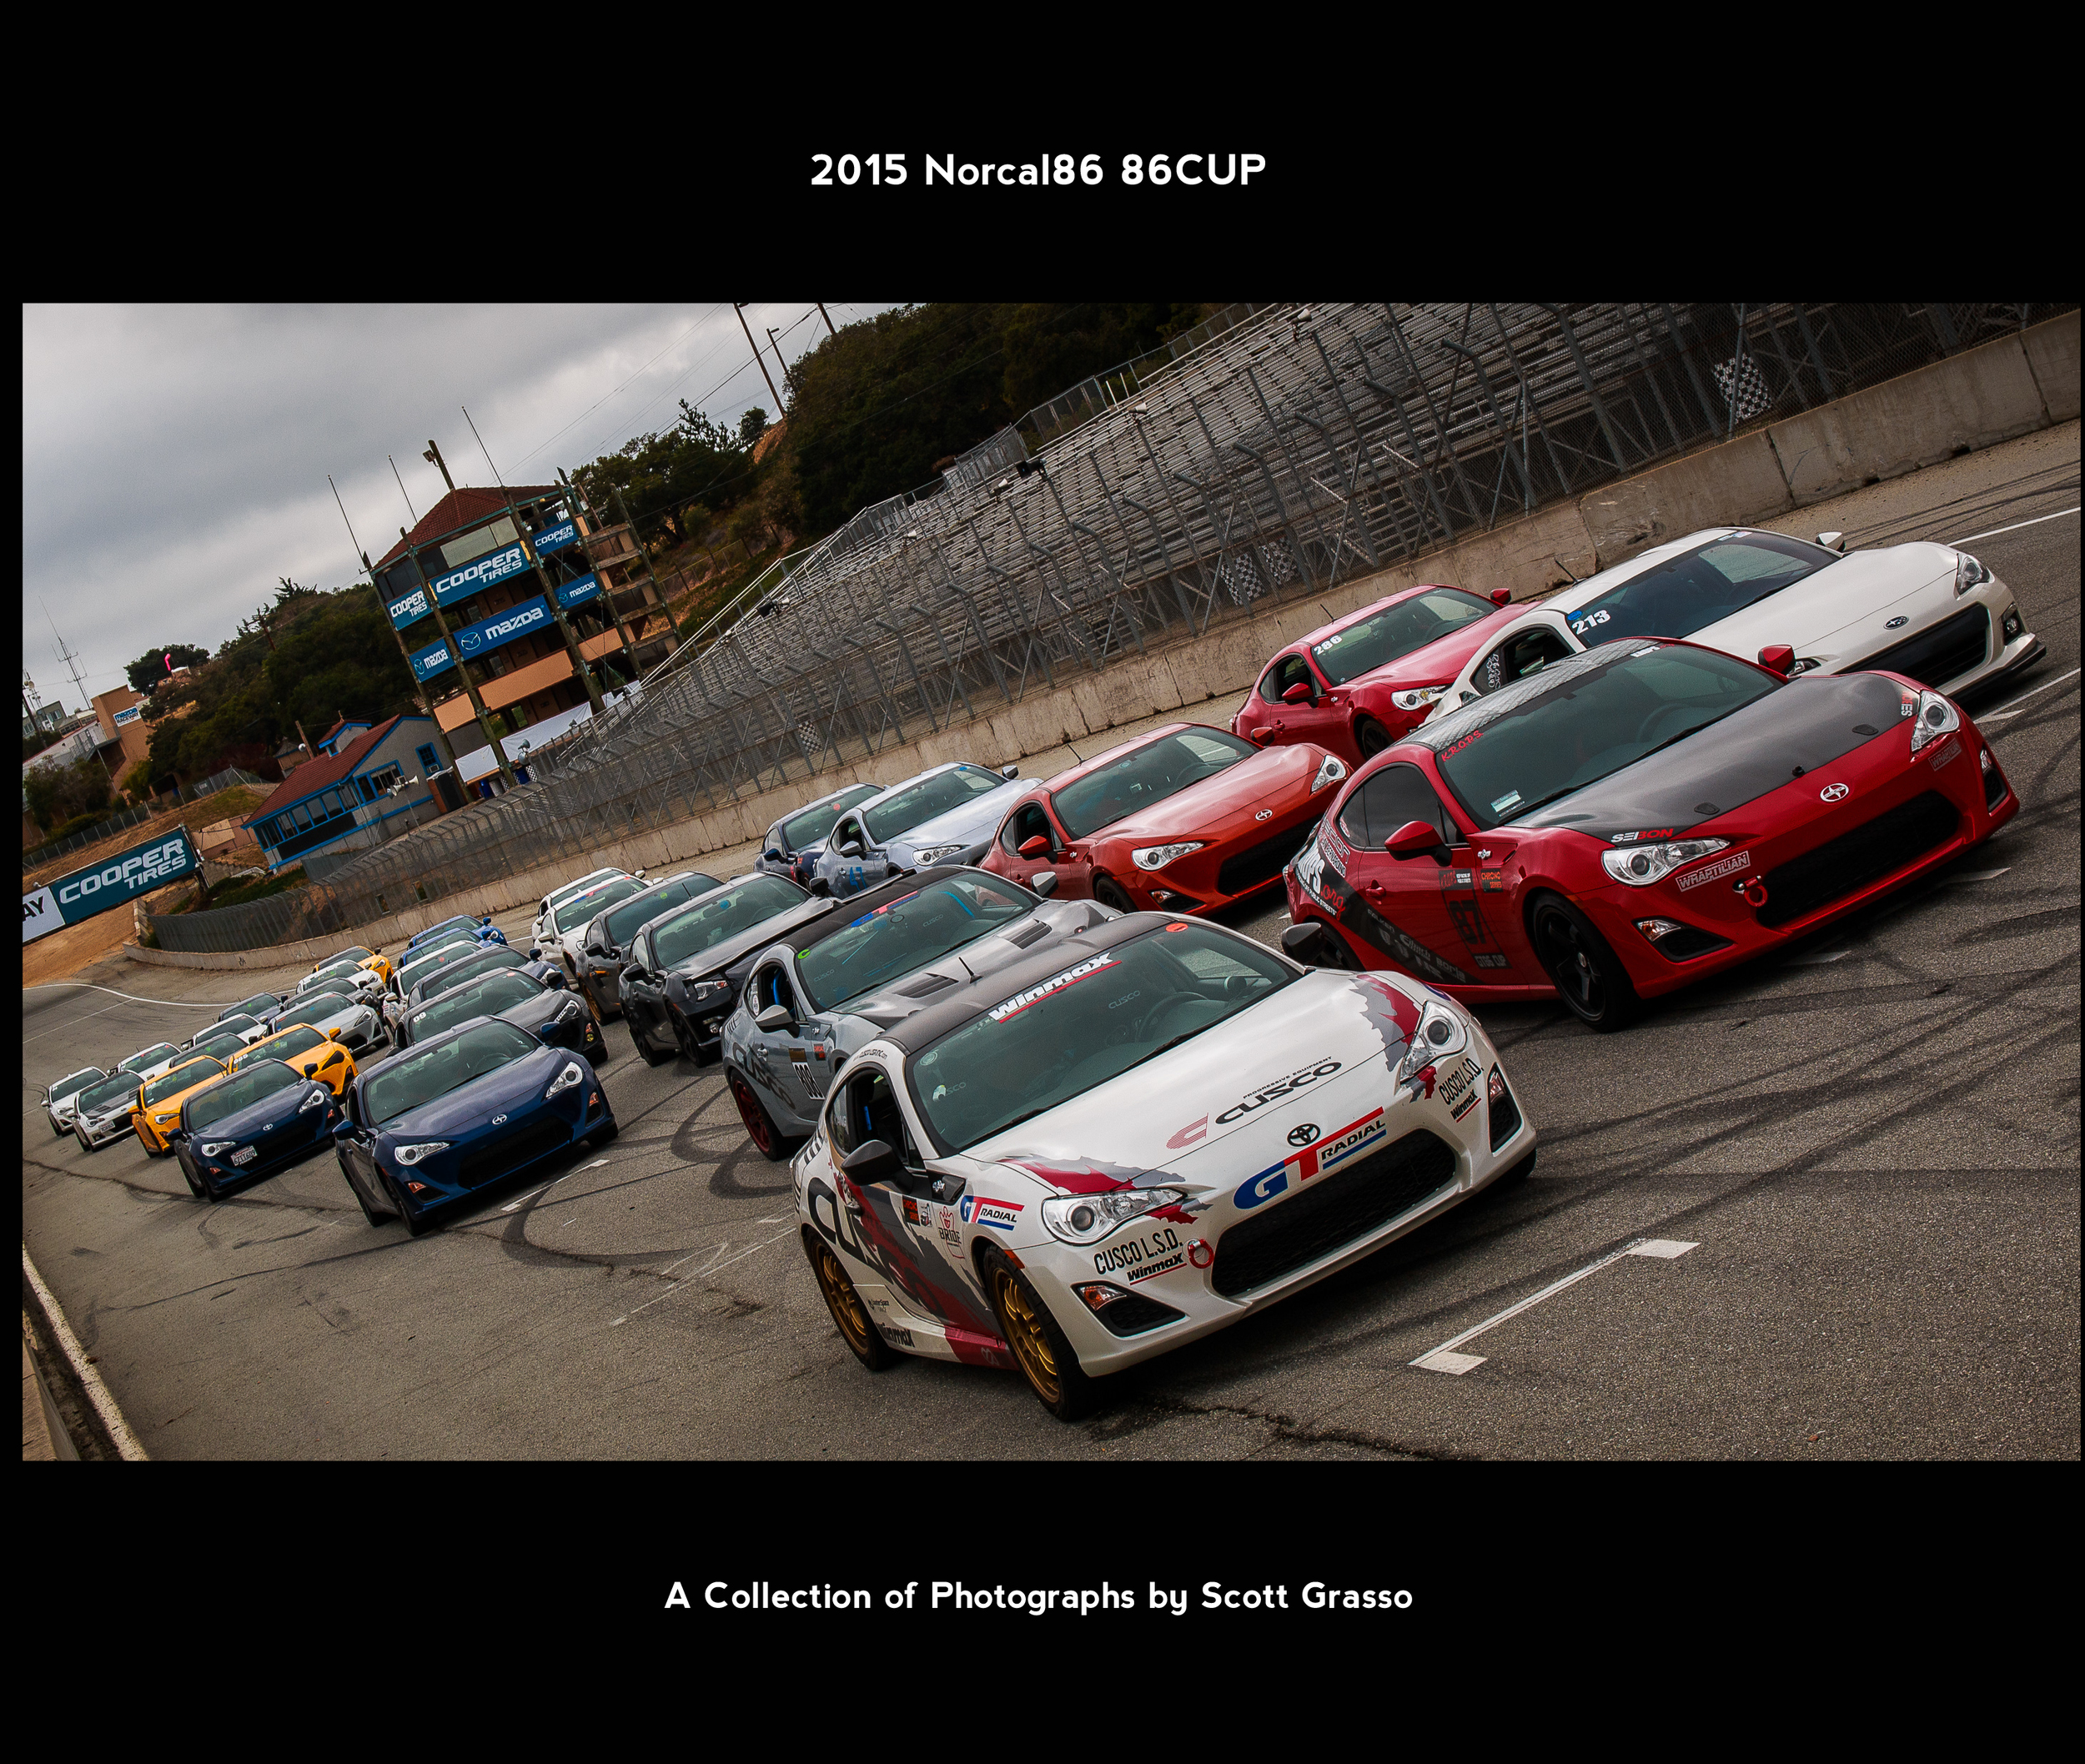 2015 Norcal86 86CUP Collection